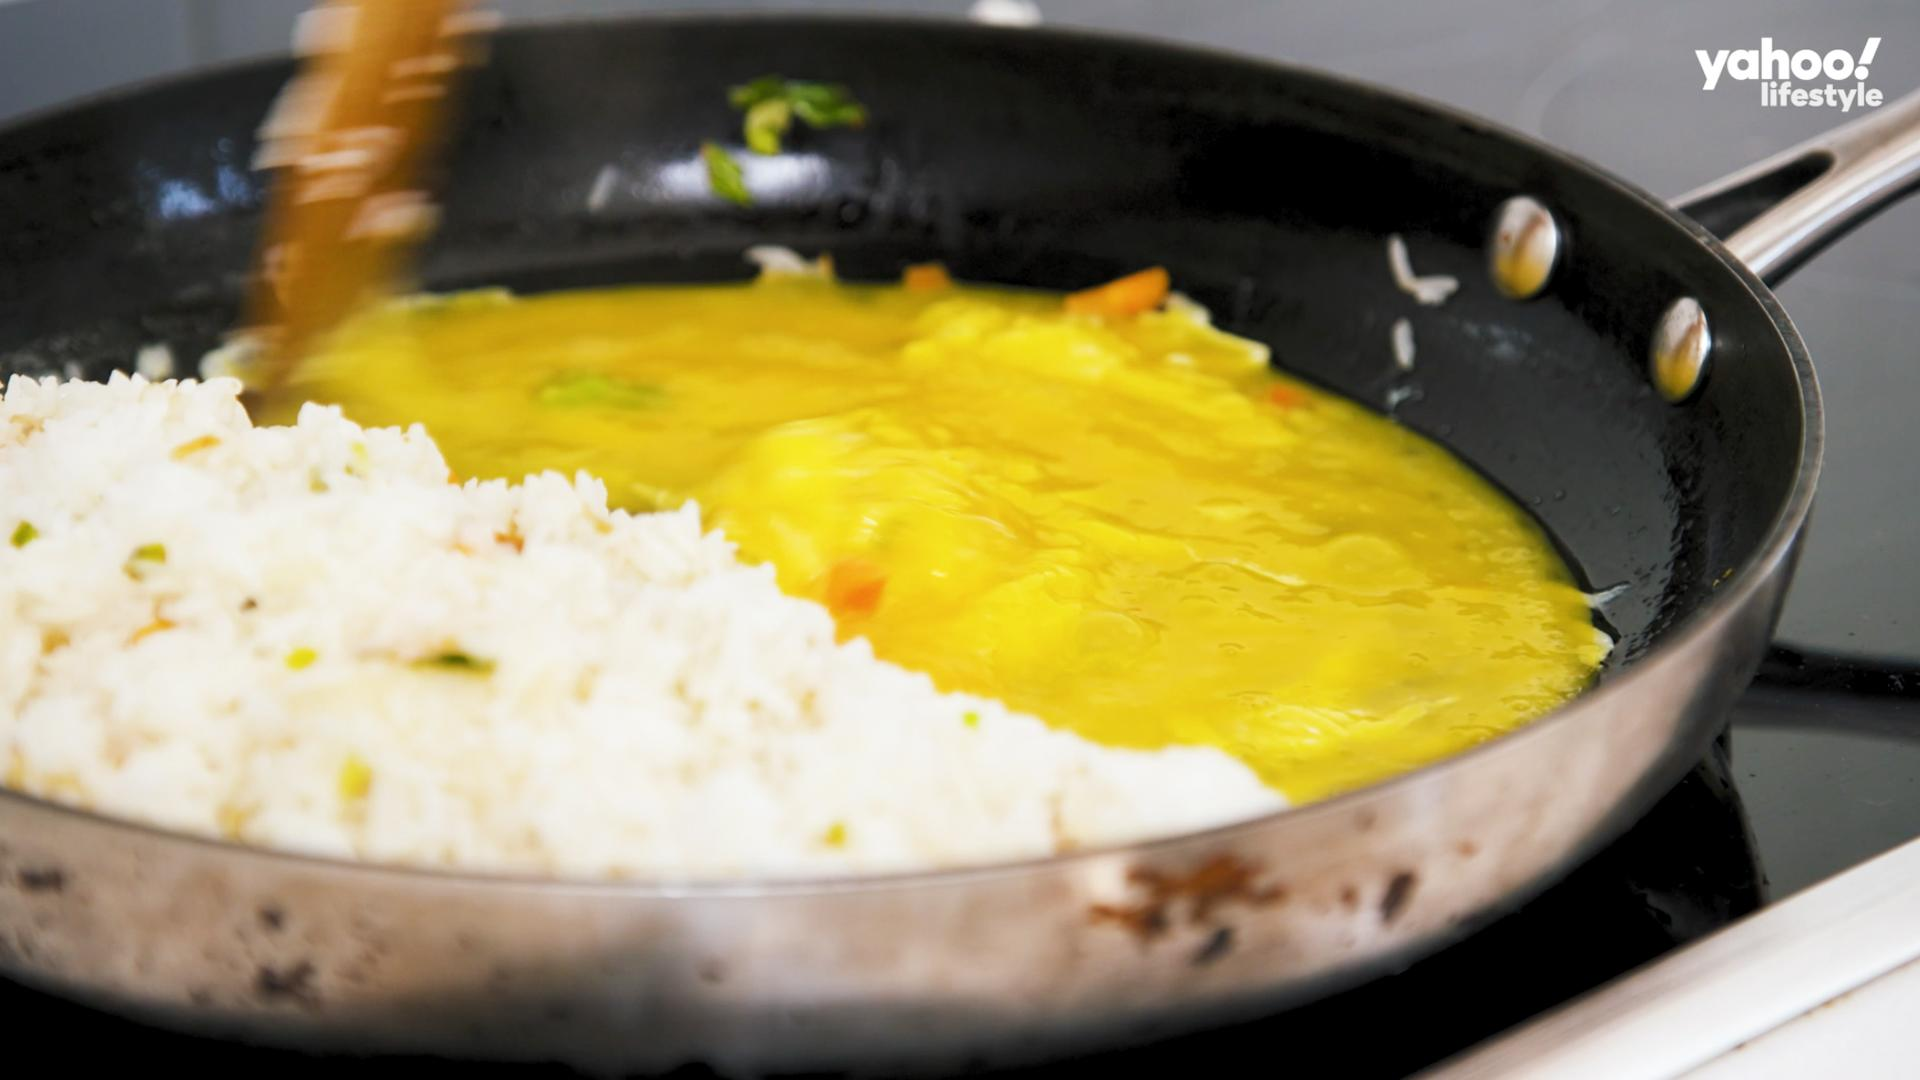 Push rice to one side of pan, pour in eggs, stirring constantly until they are just cooked.